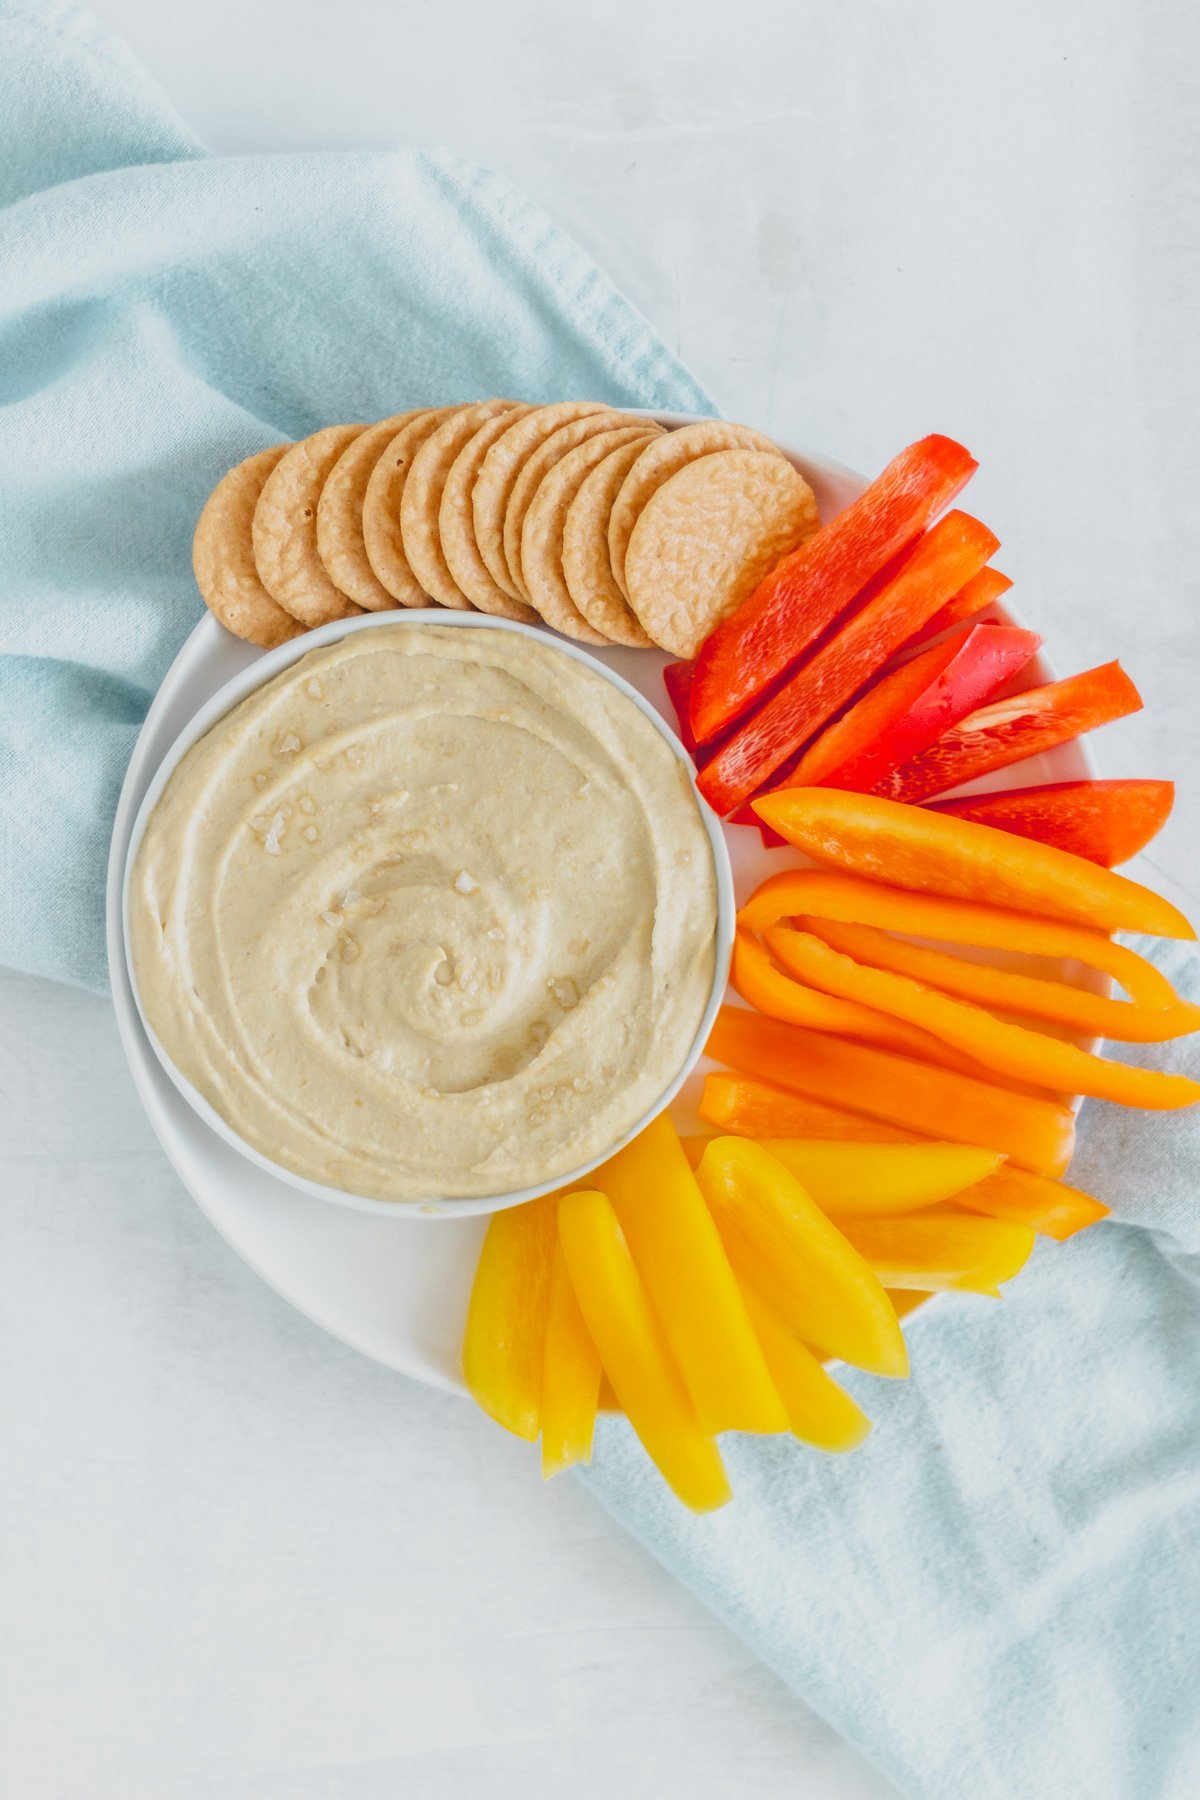 Overhead view of hummus on white plate with crackers and sliced bell peppers, with light blue tea towel